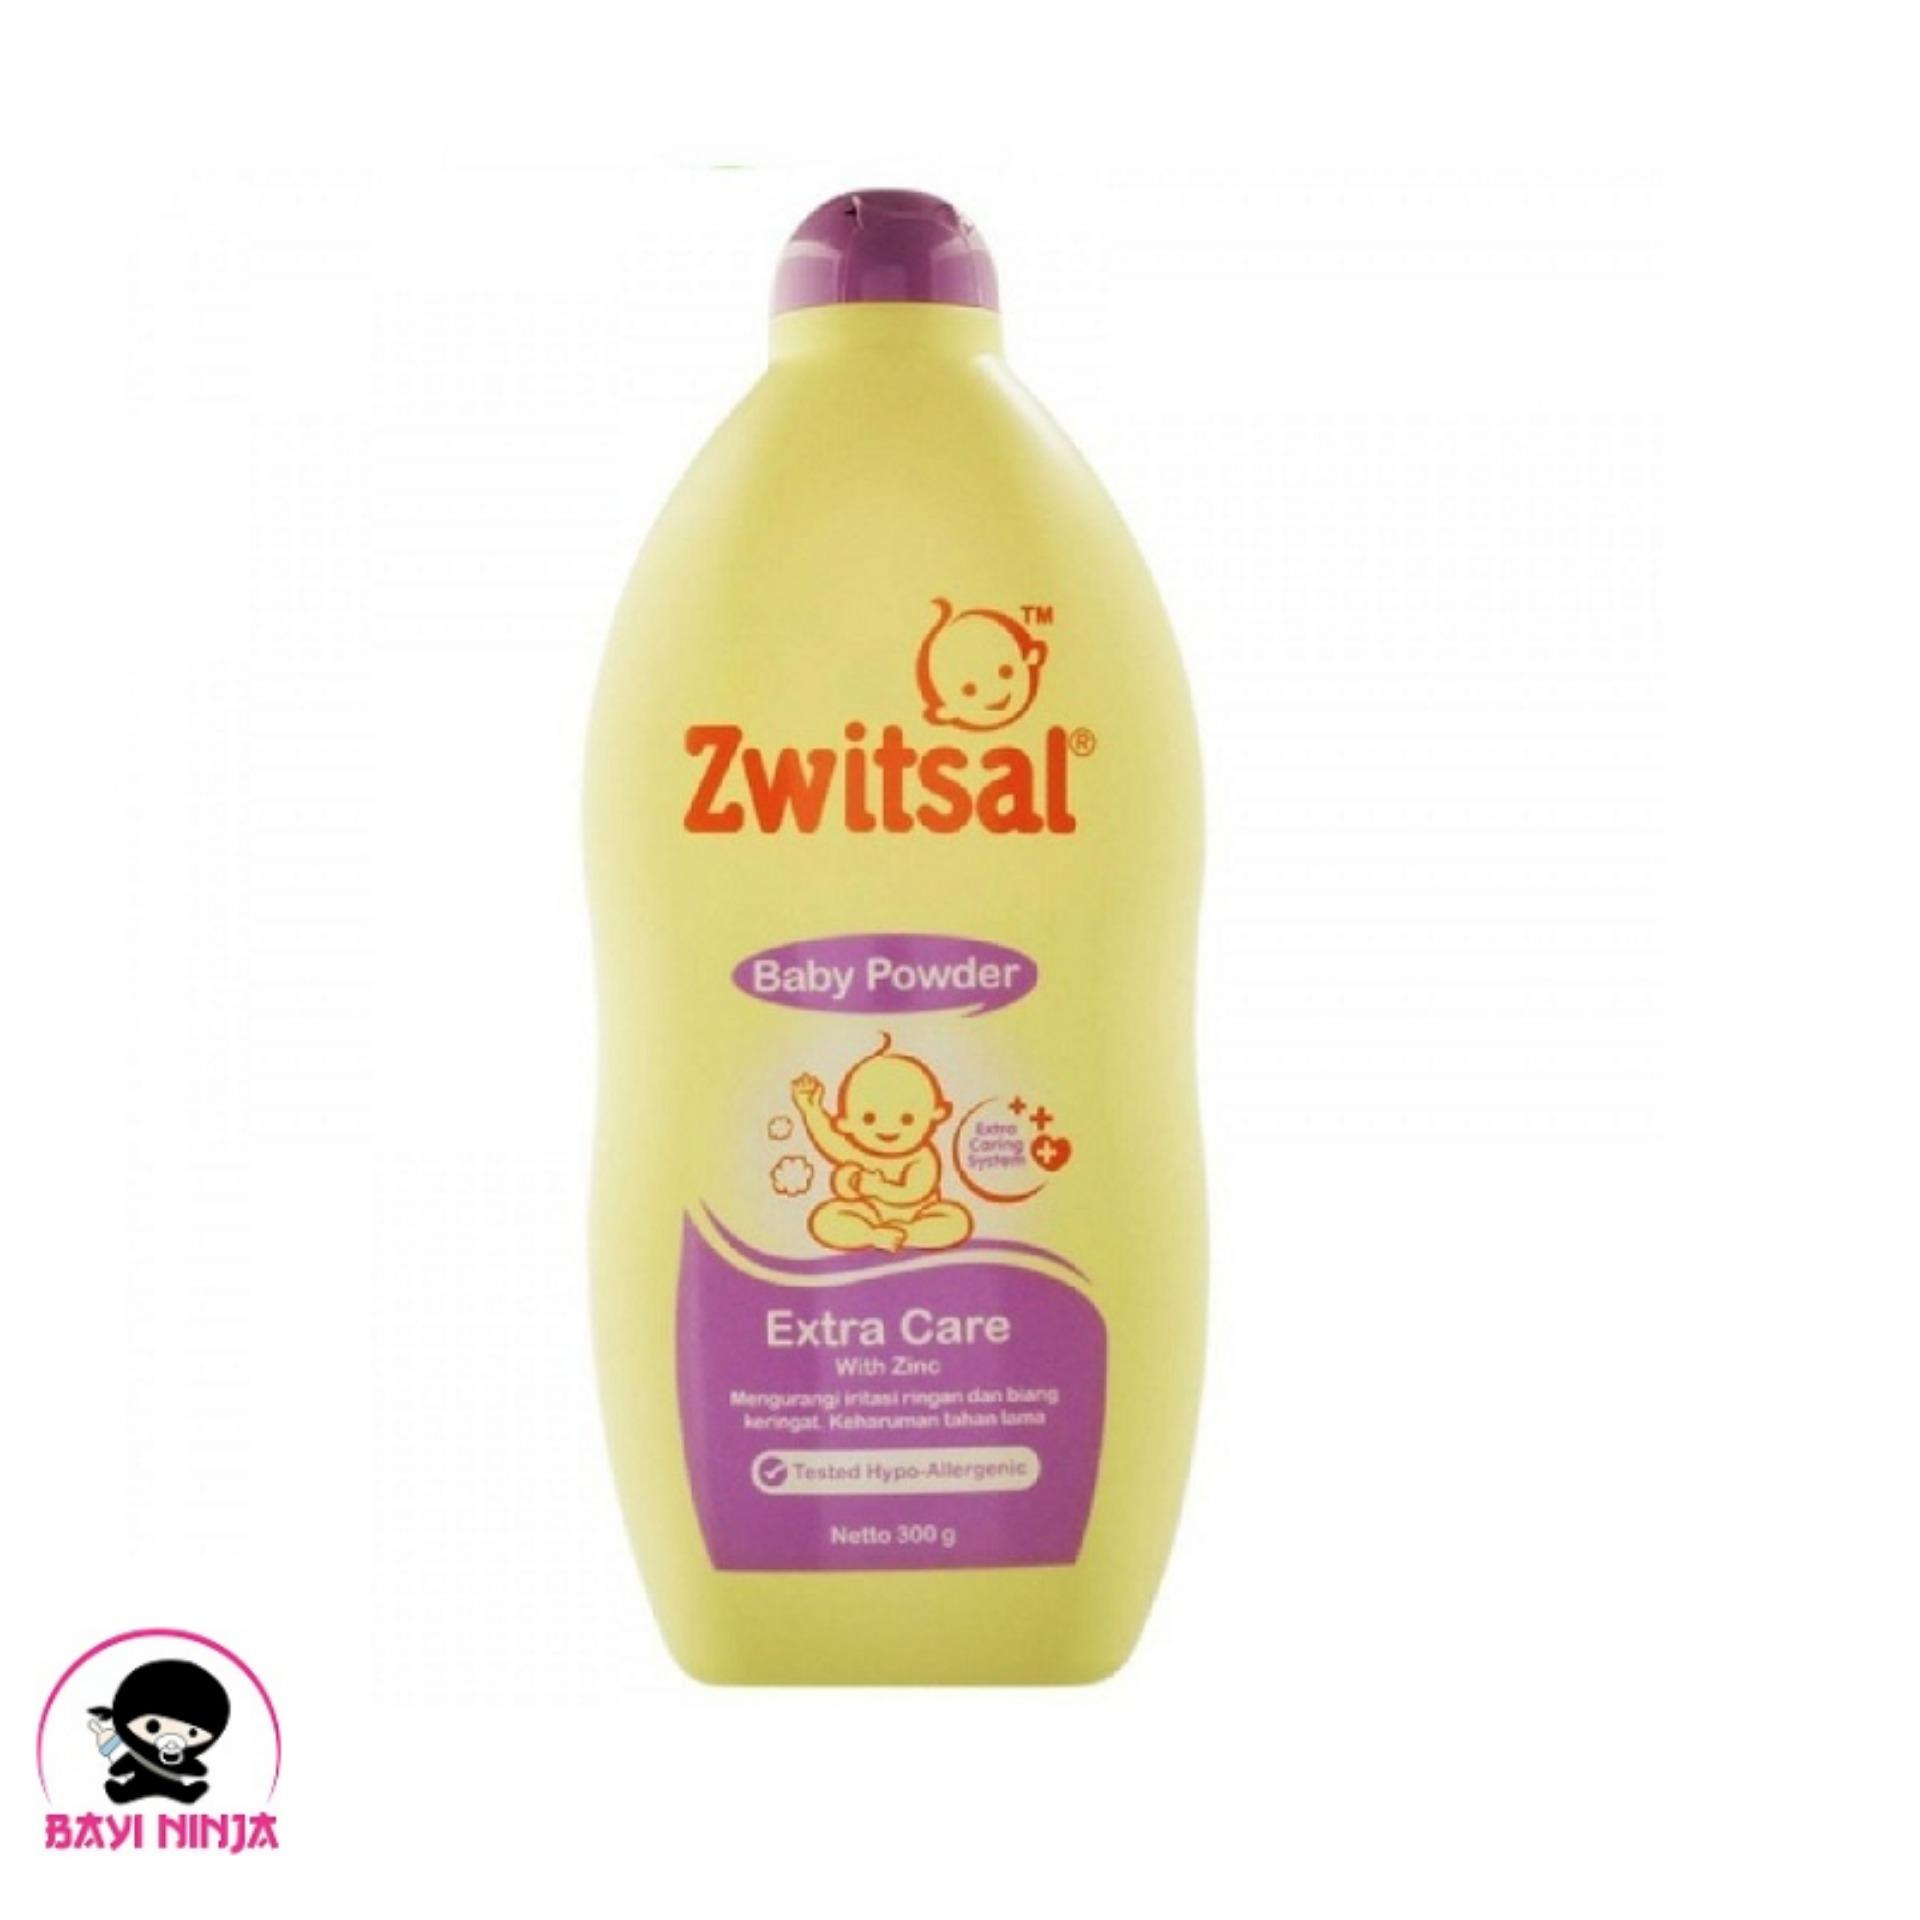 Harga Zwitsal Classic Baby Cologne Fresh Floral 100 Ml Panduan Source · ZWITSAL Baby Powder Extra Care with Zinc Bottle 300g 300 g